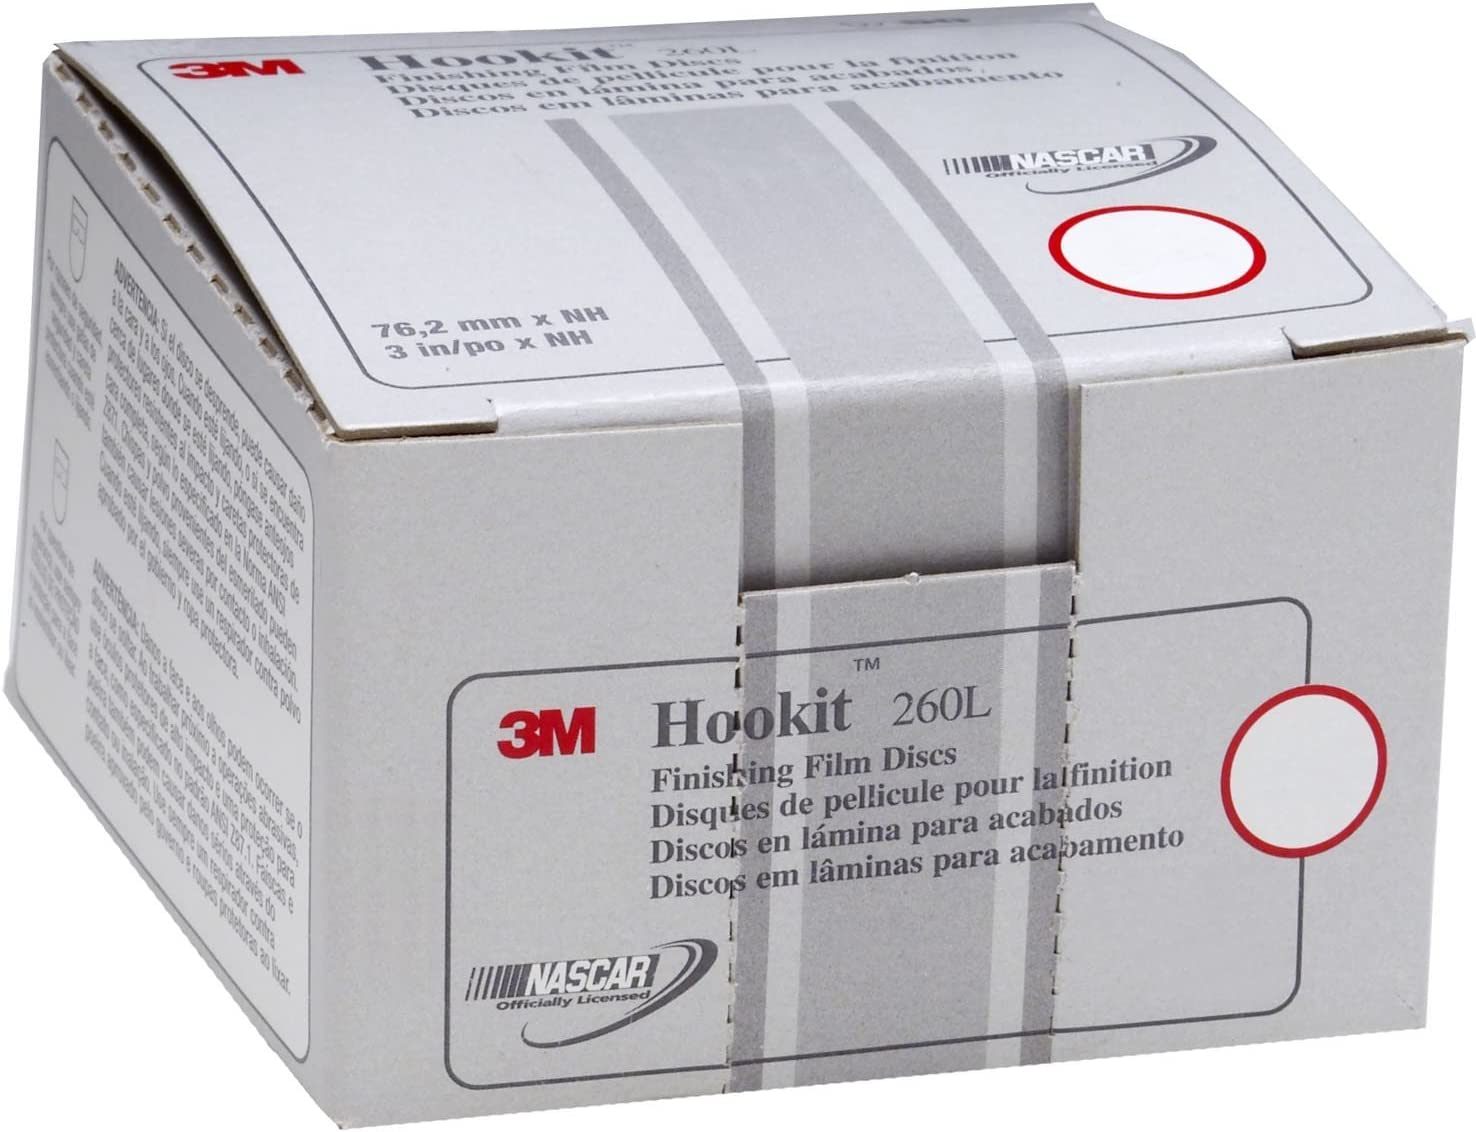 3M Hookit Finishing Film Abrasive Disc 260L, 00969, 6 in, P1000, 100 discs per carton 71kt6kmP7bL